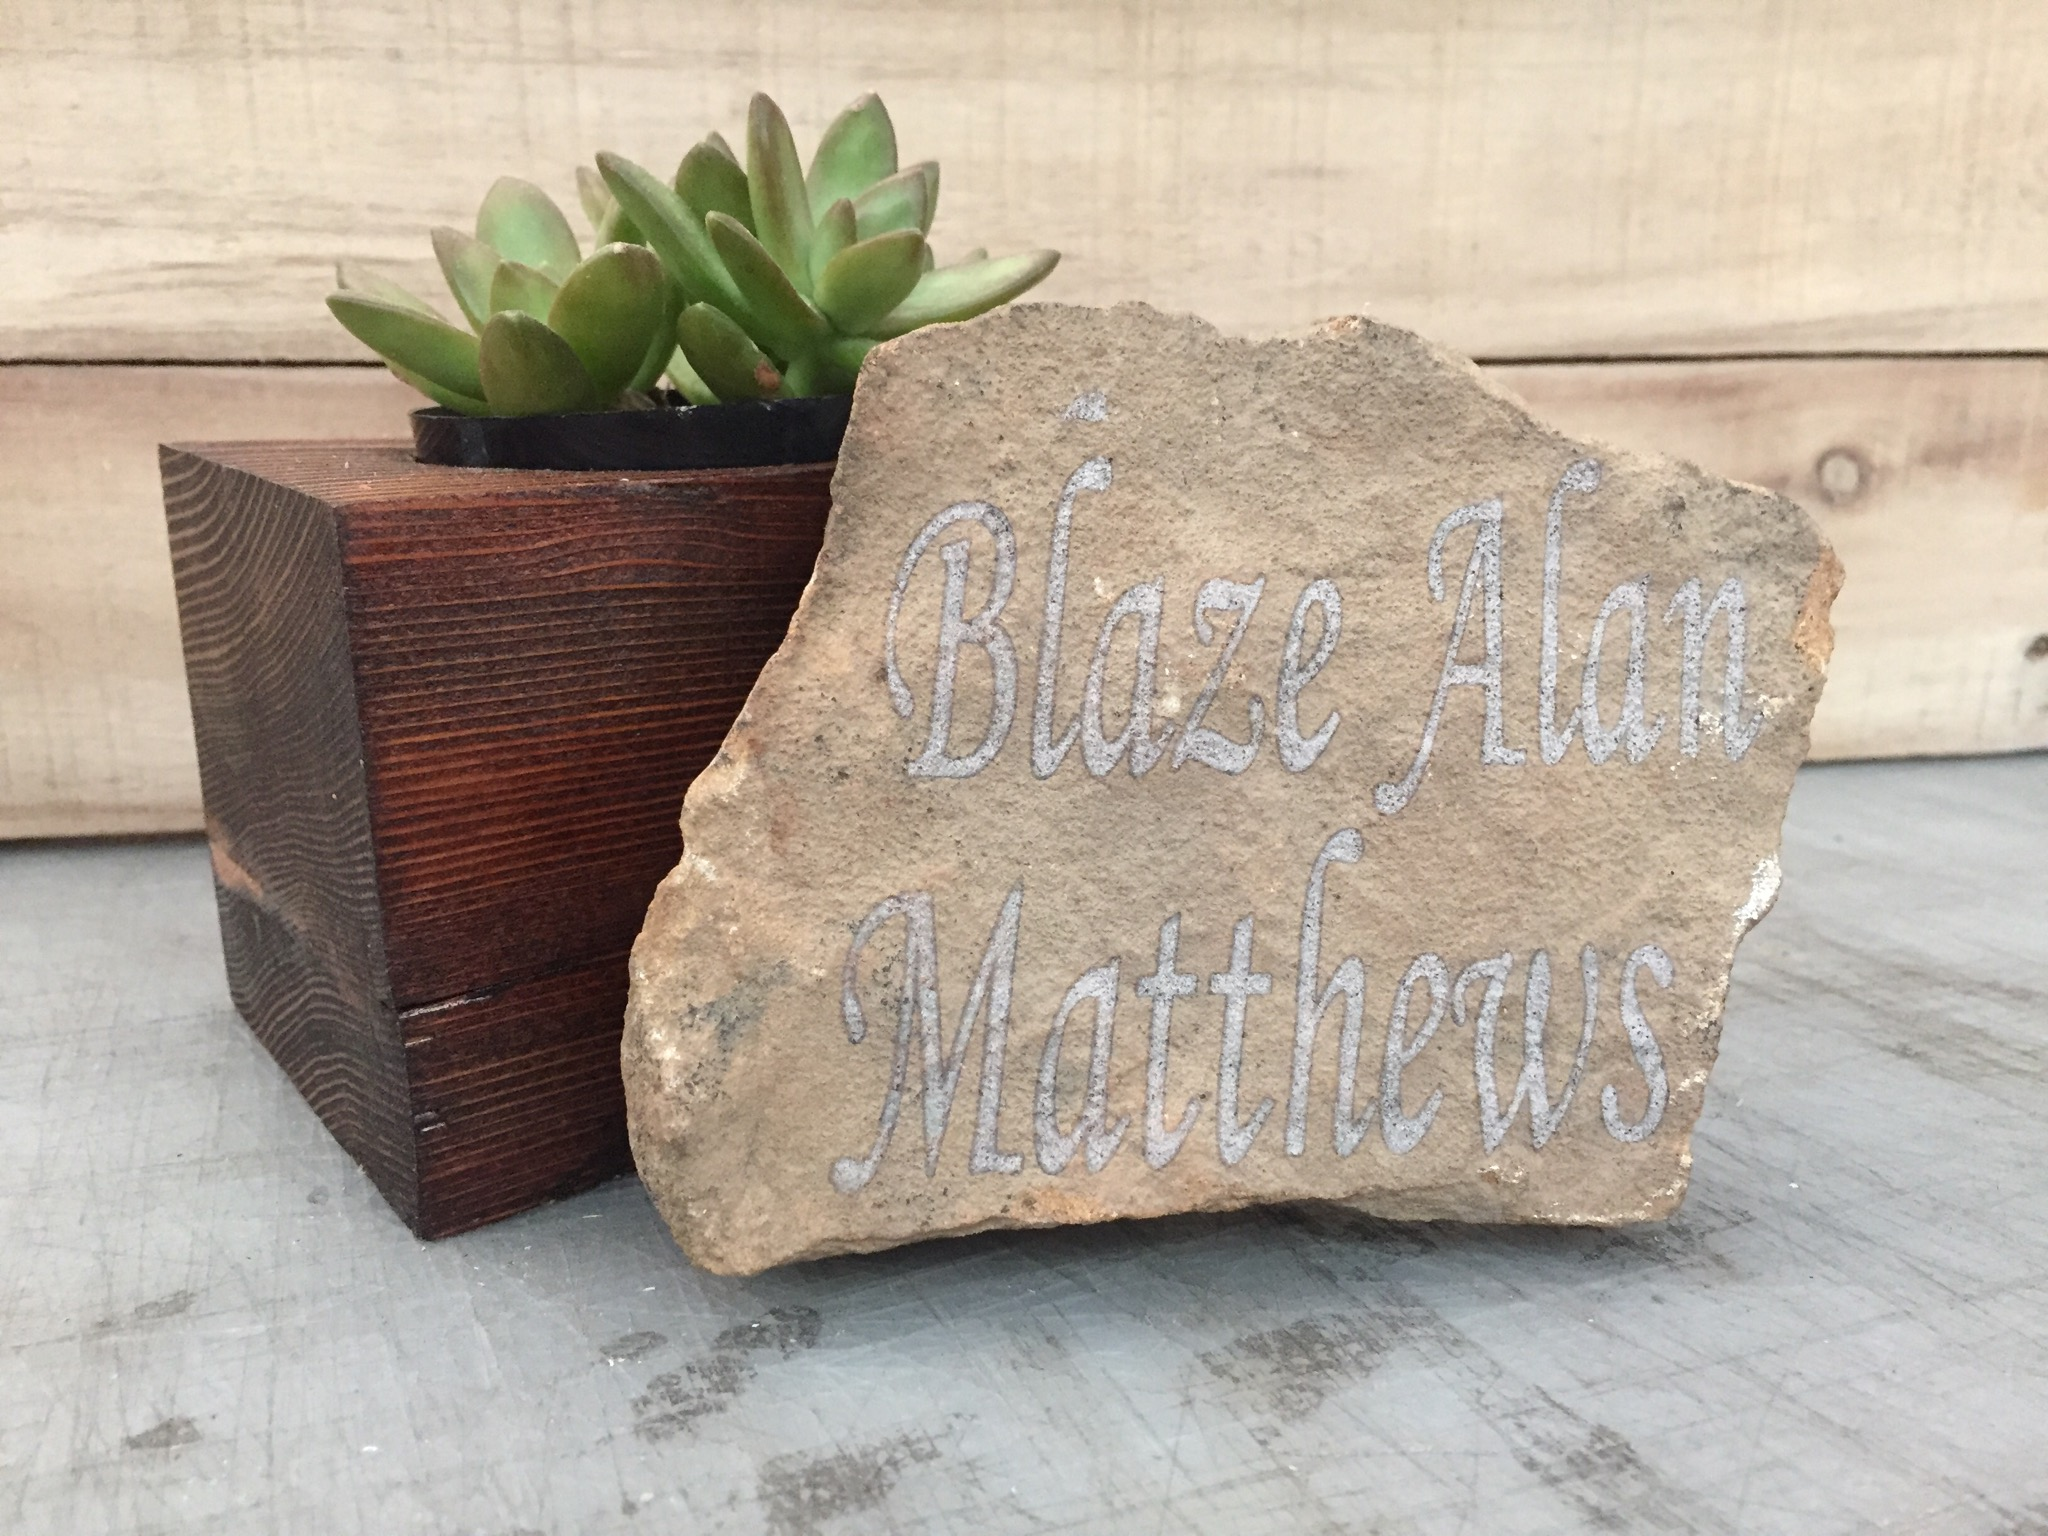 Picture of Engraved Rock!